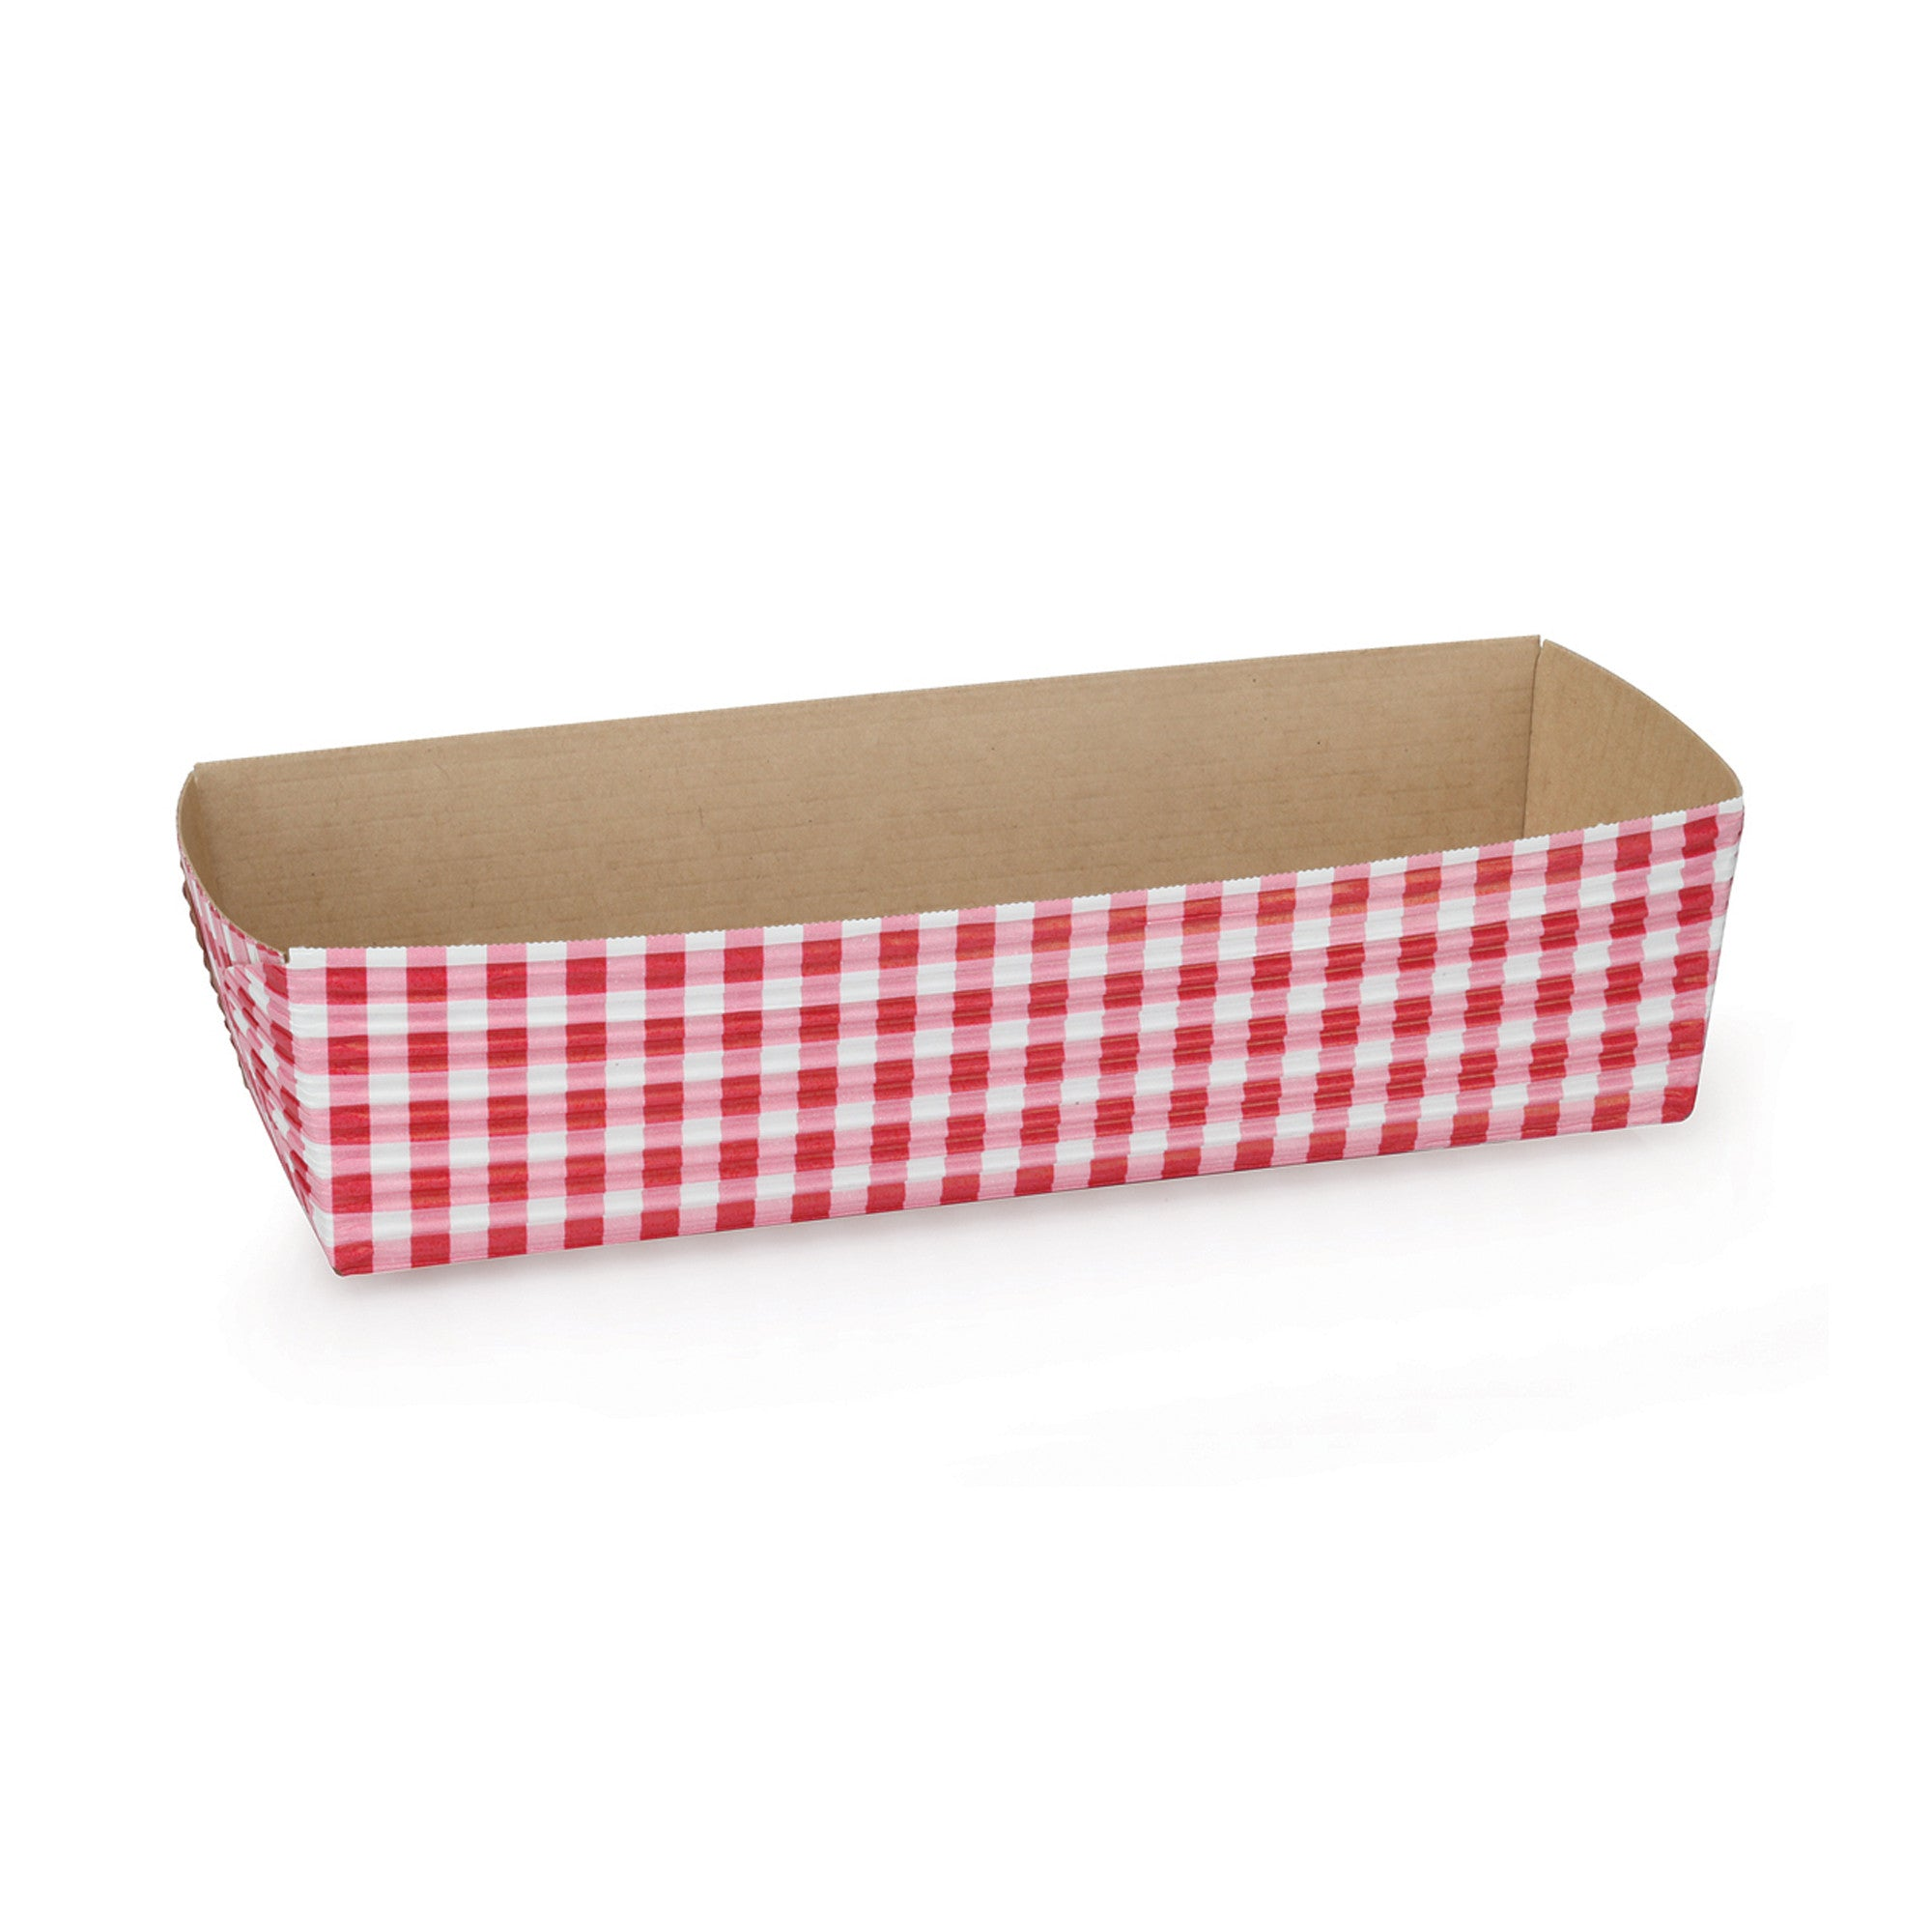 Rectangular Loaf Baking Pans, Red Gingham - Paper Bake Shop